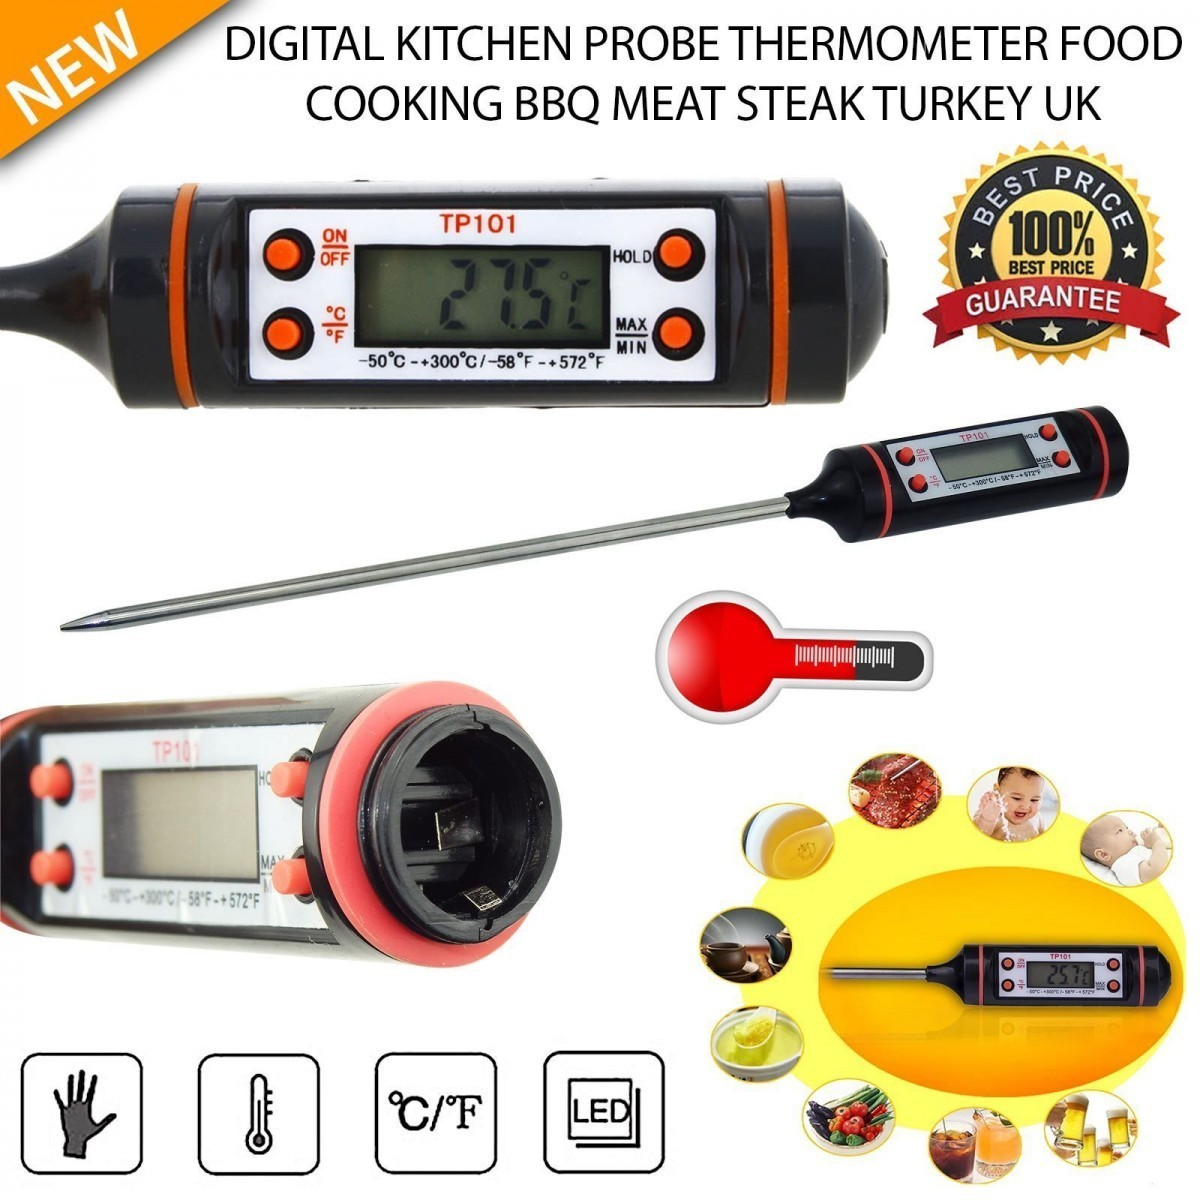 Digital Probe Thermometer Kitchen Cooking BBQ Food LCD Stainless Steel Sensor Timer Temperature Gauge - Bravo!! store